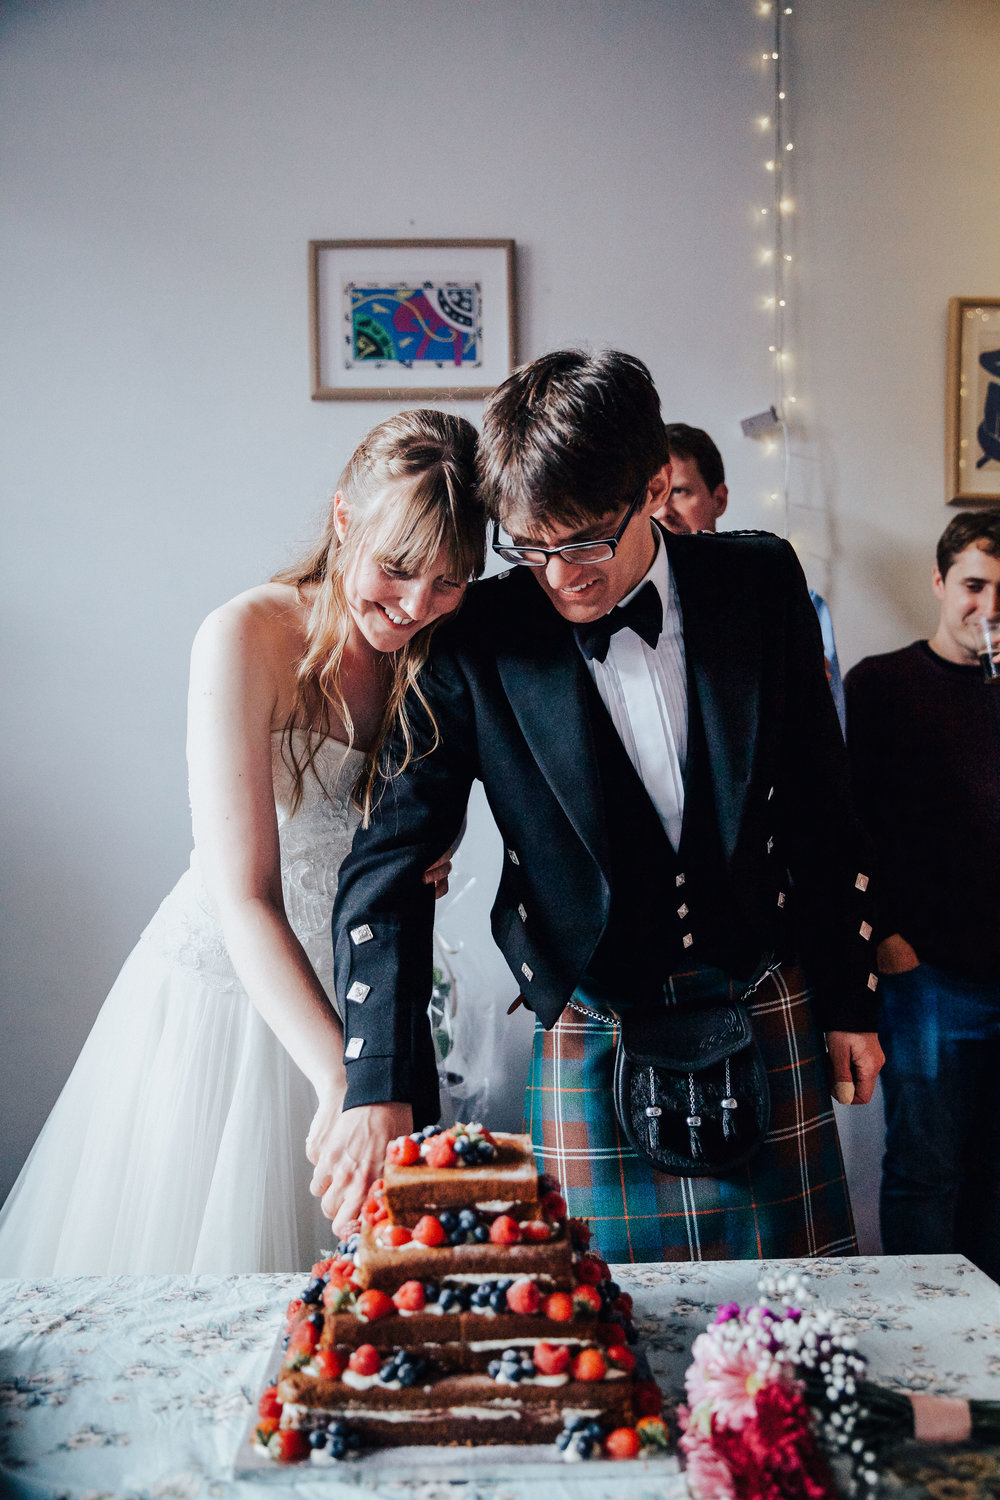 ALTERNATIVE_GLASGOW_CITY_WEDDING_PJ_PHILLIPS_PHOTOGRAPHY_WEDDING_PHOTOGRAPHY_106.jpg